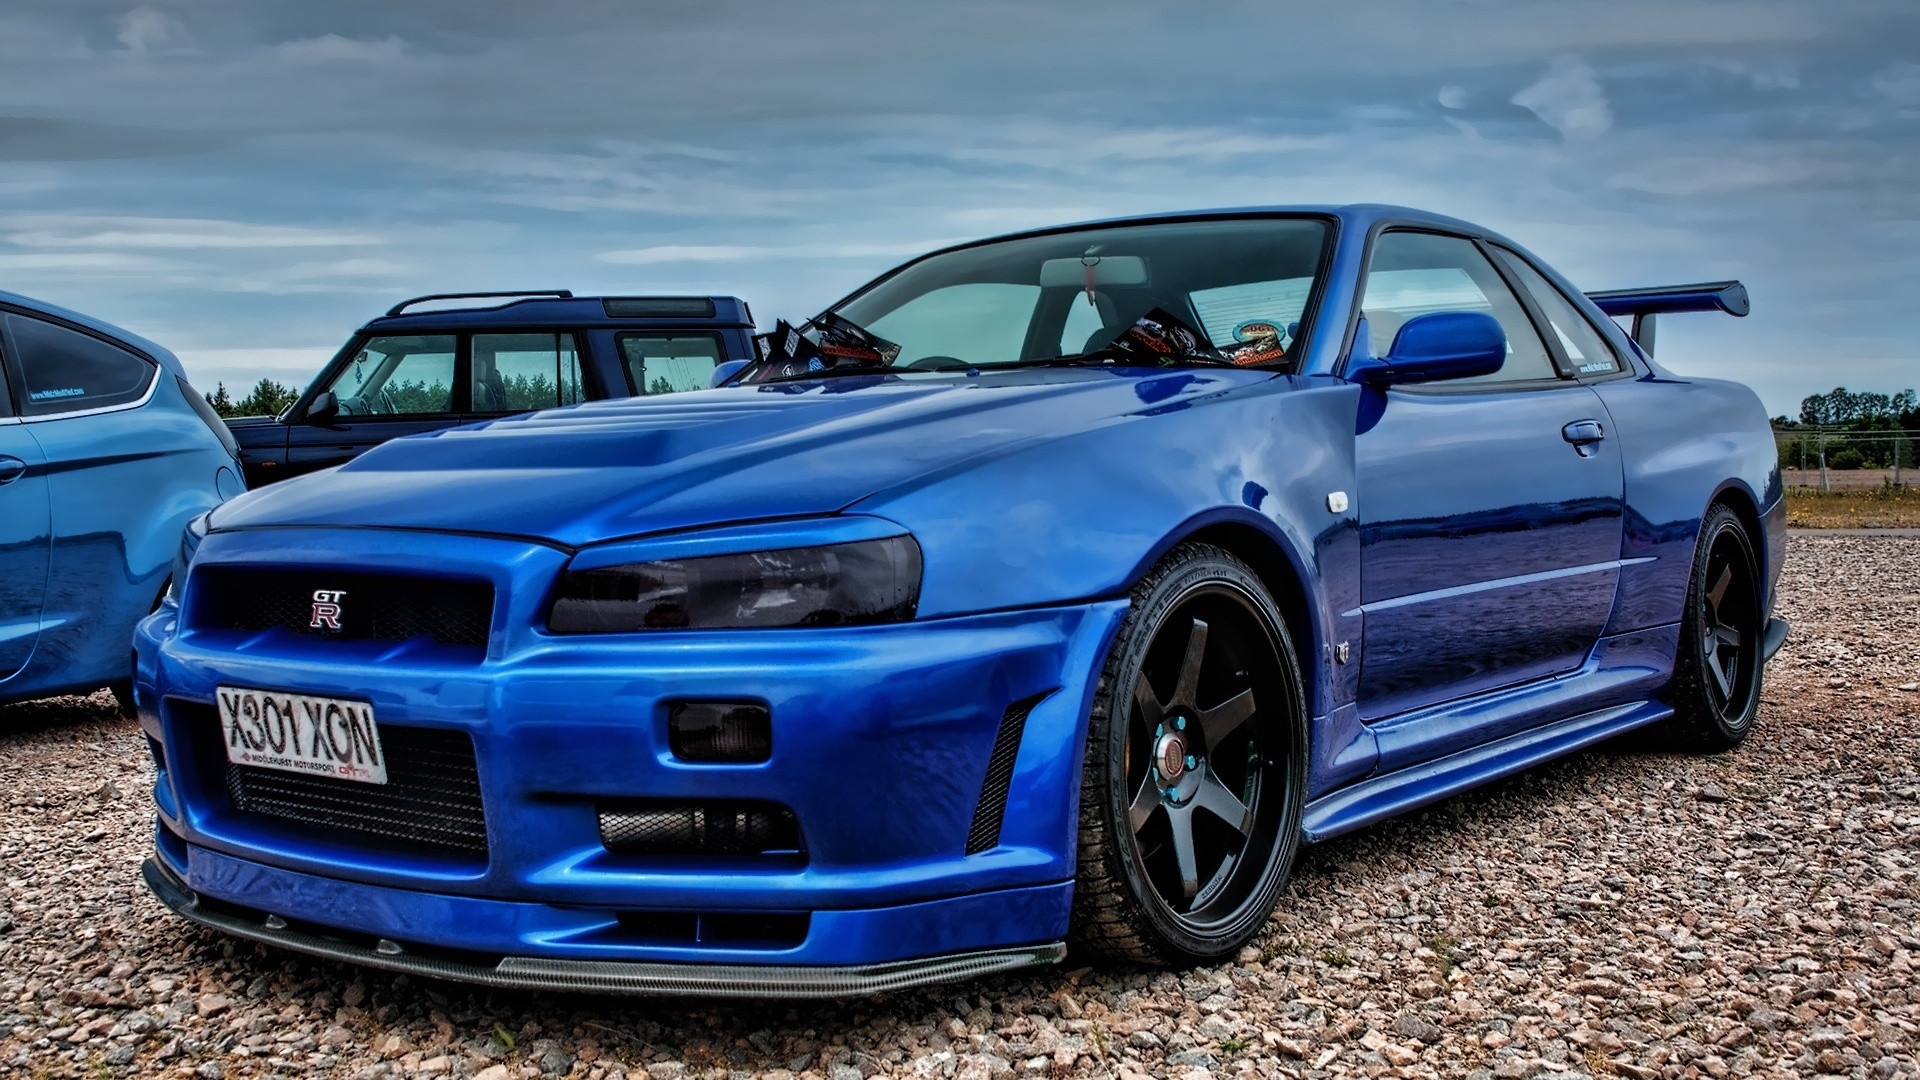 1920x1080 Skyline Gtr R34 Wallpapers - Wallpaper Cave